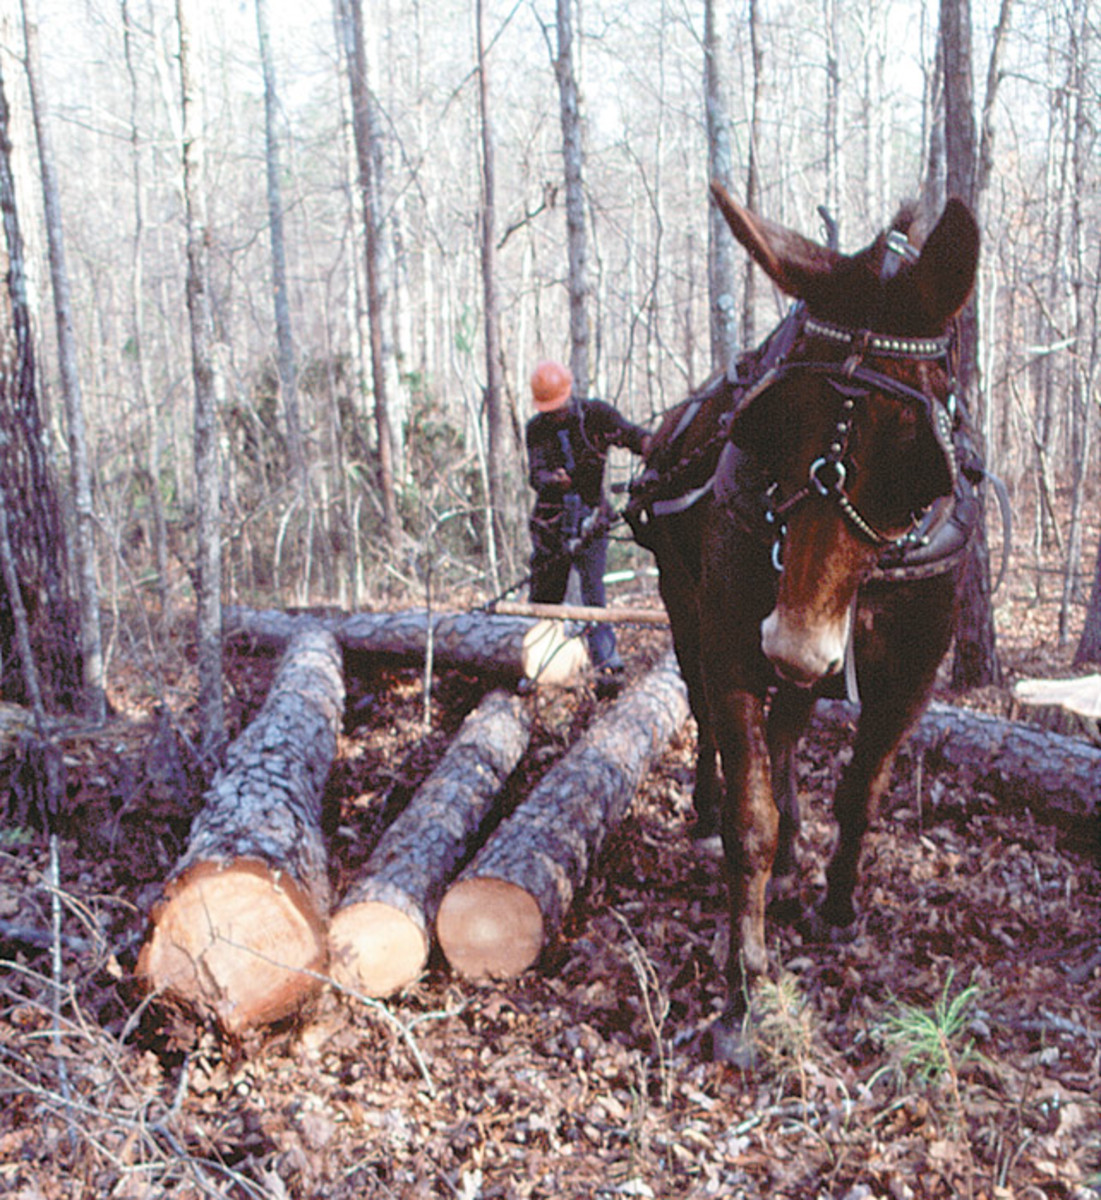 Mule pulling logs out of wooded areas then taking logs to sell them for making paper and such items.